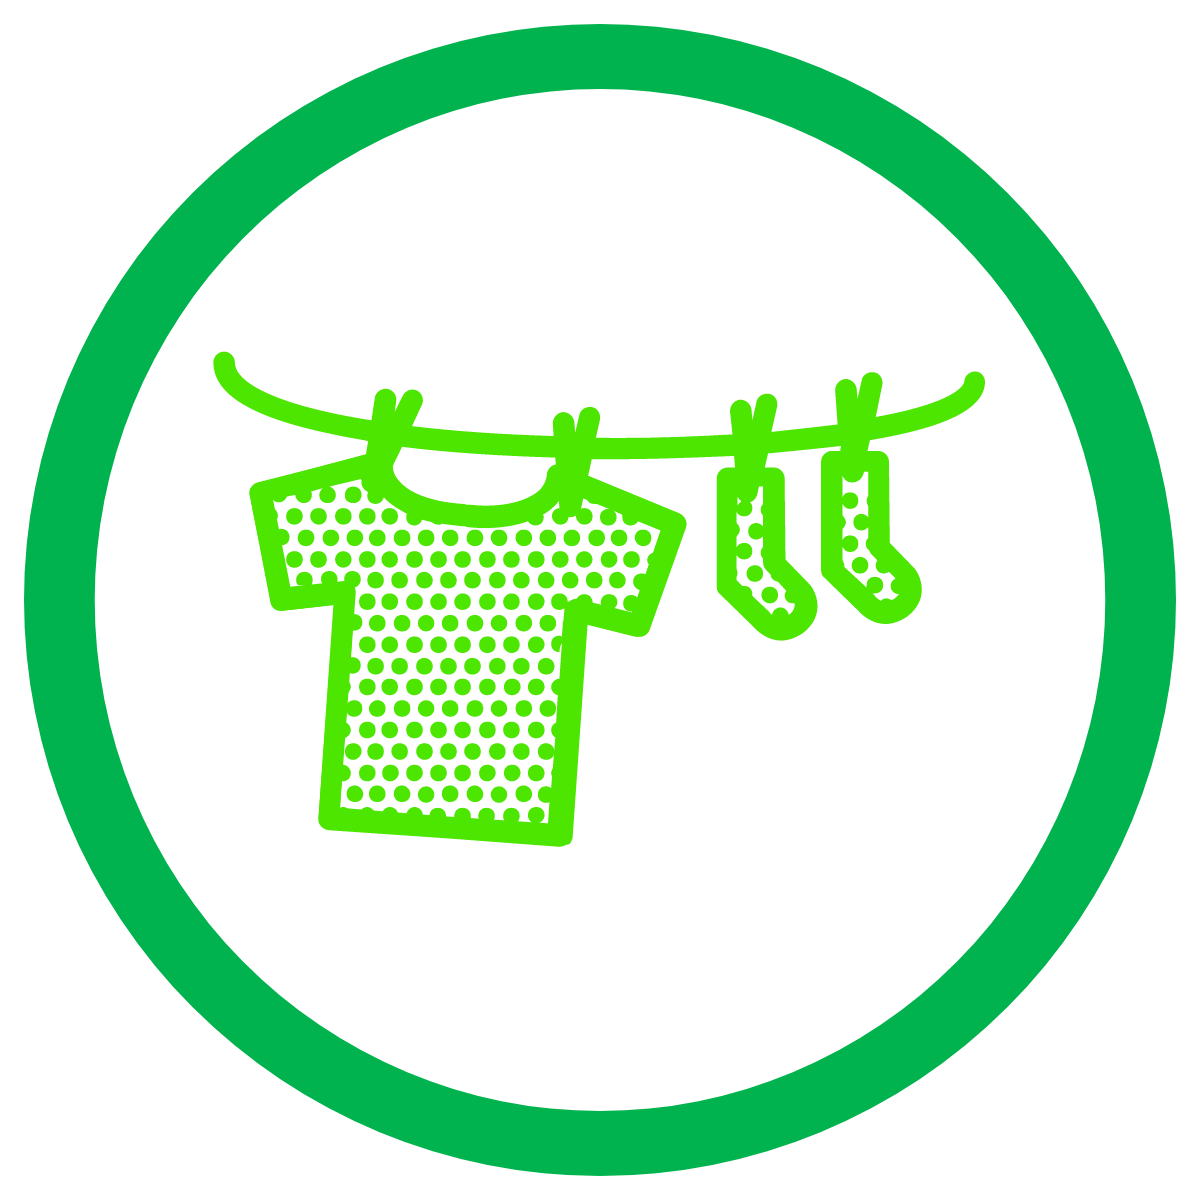 Green line drawing of clothing hanging on a laundry line